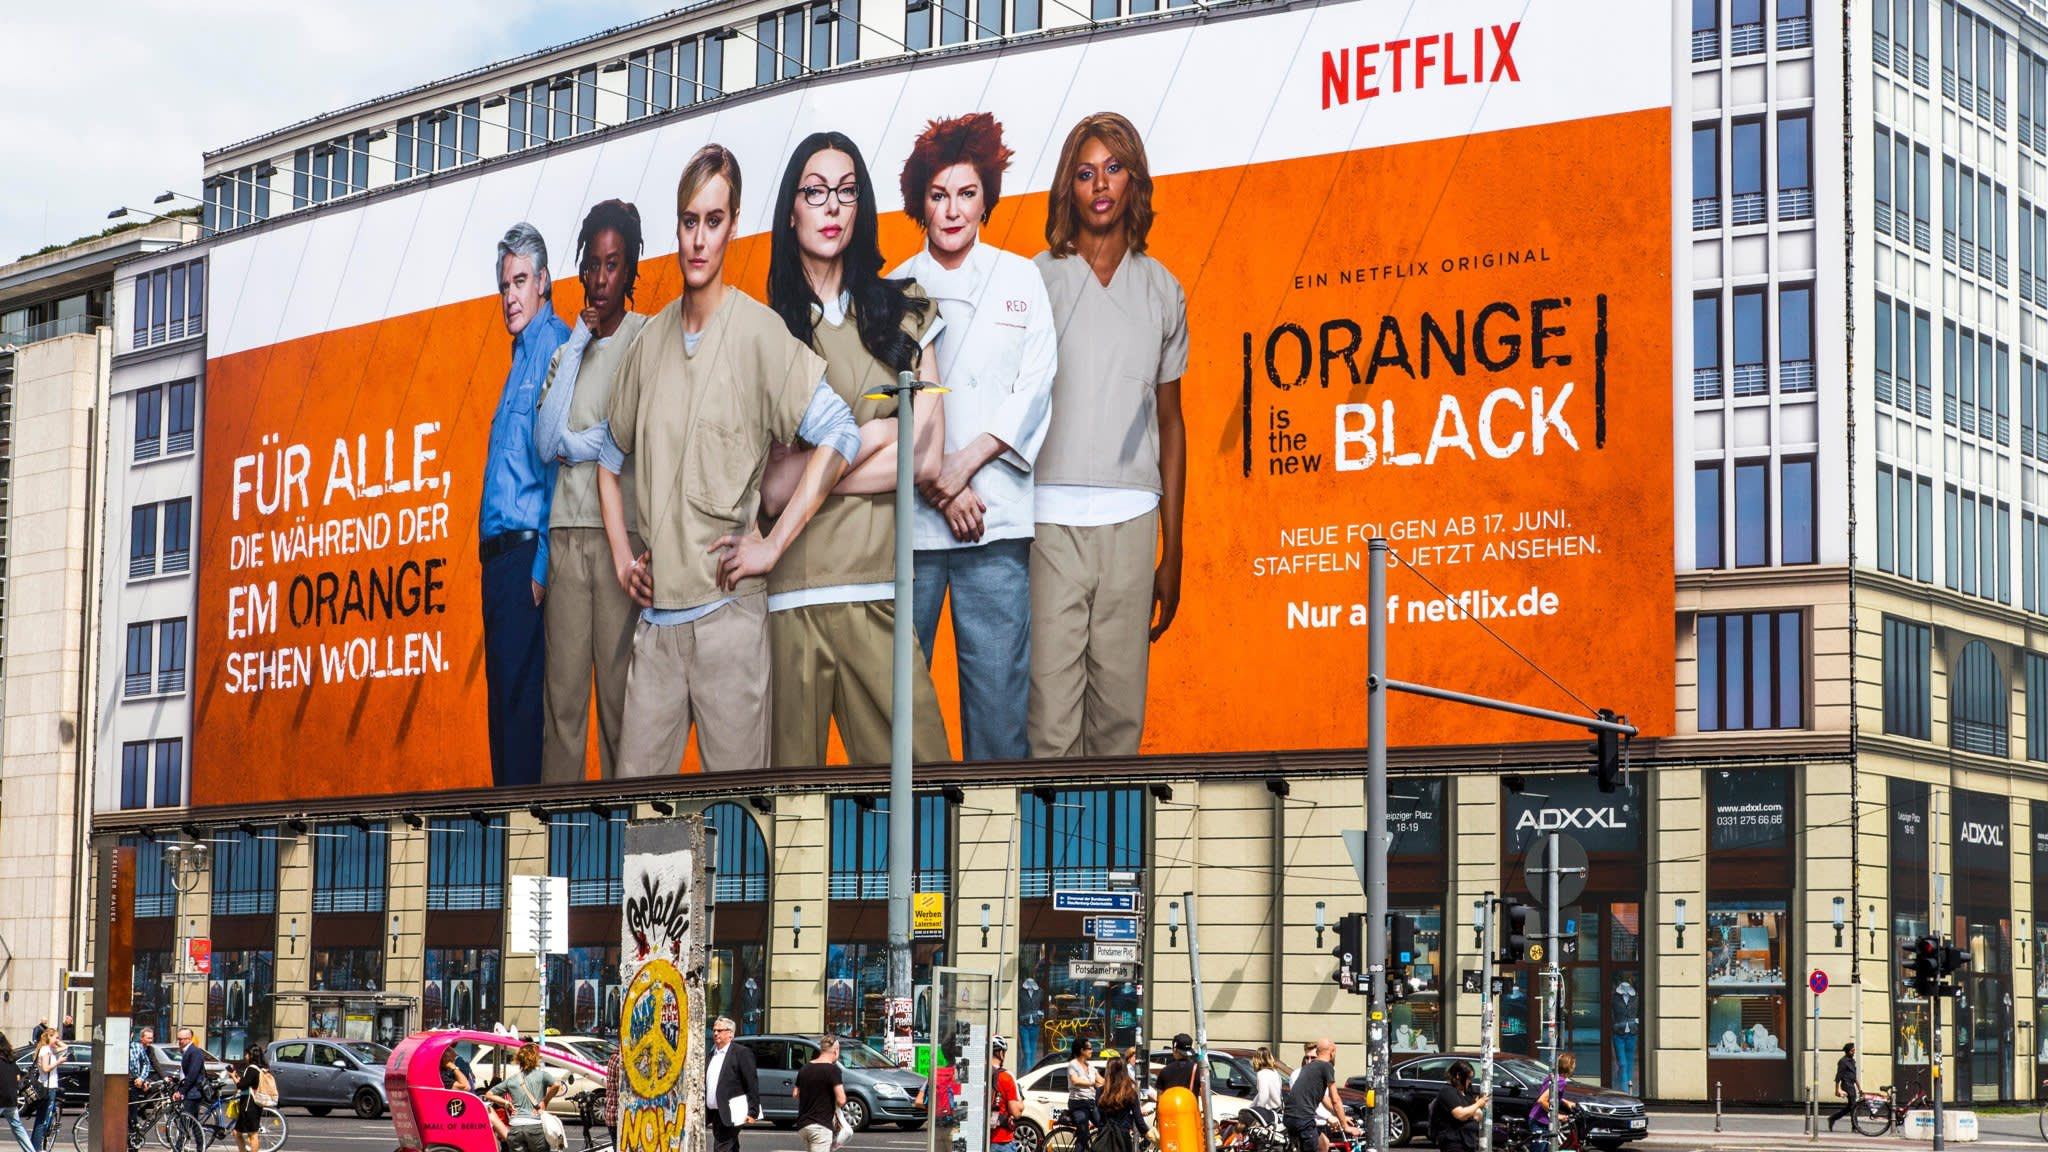 Netflix increases investment in European TV content | Financial Times